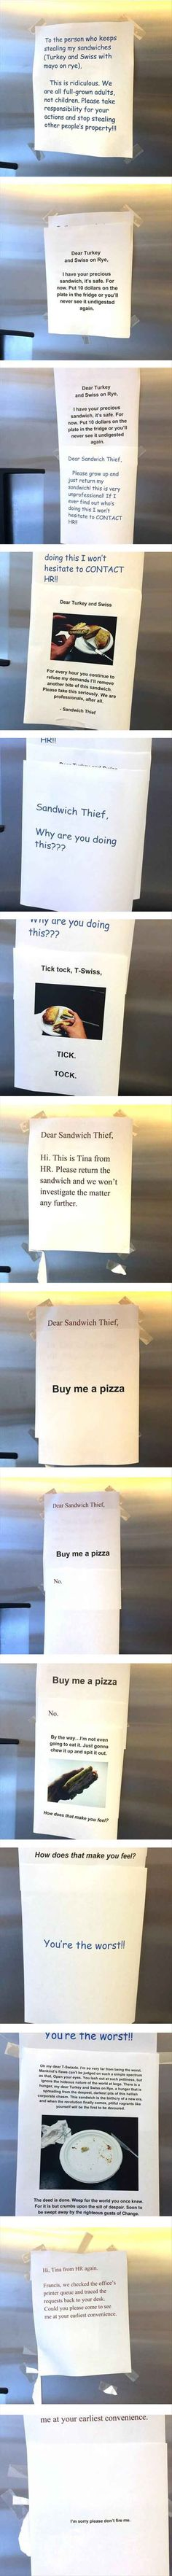 The Sandwich Thief Isn't Who You Think - 15 Pics